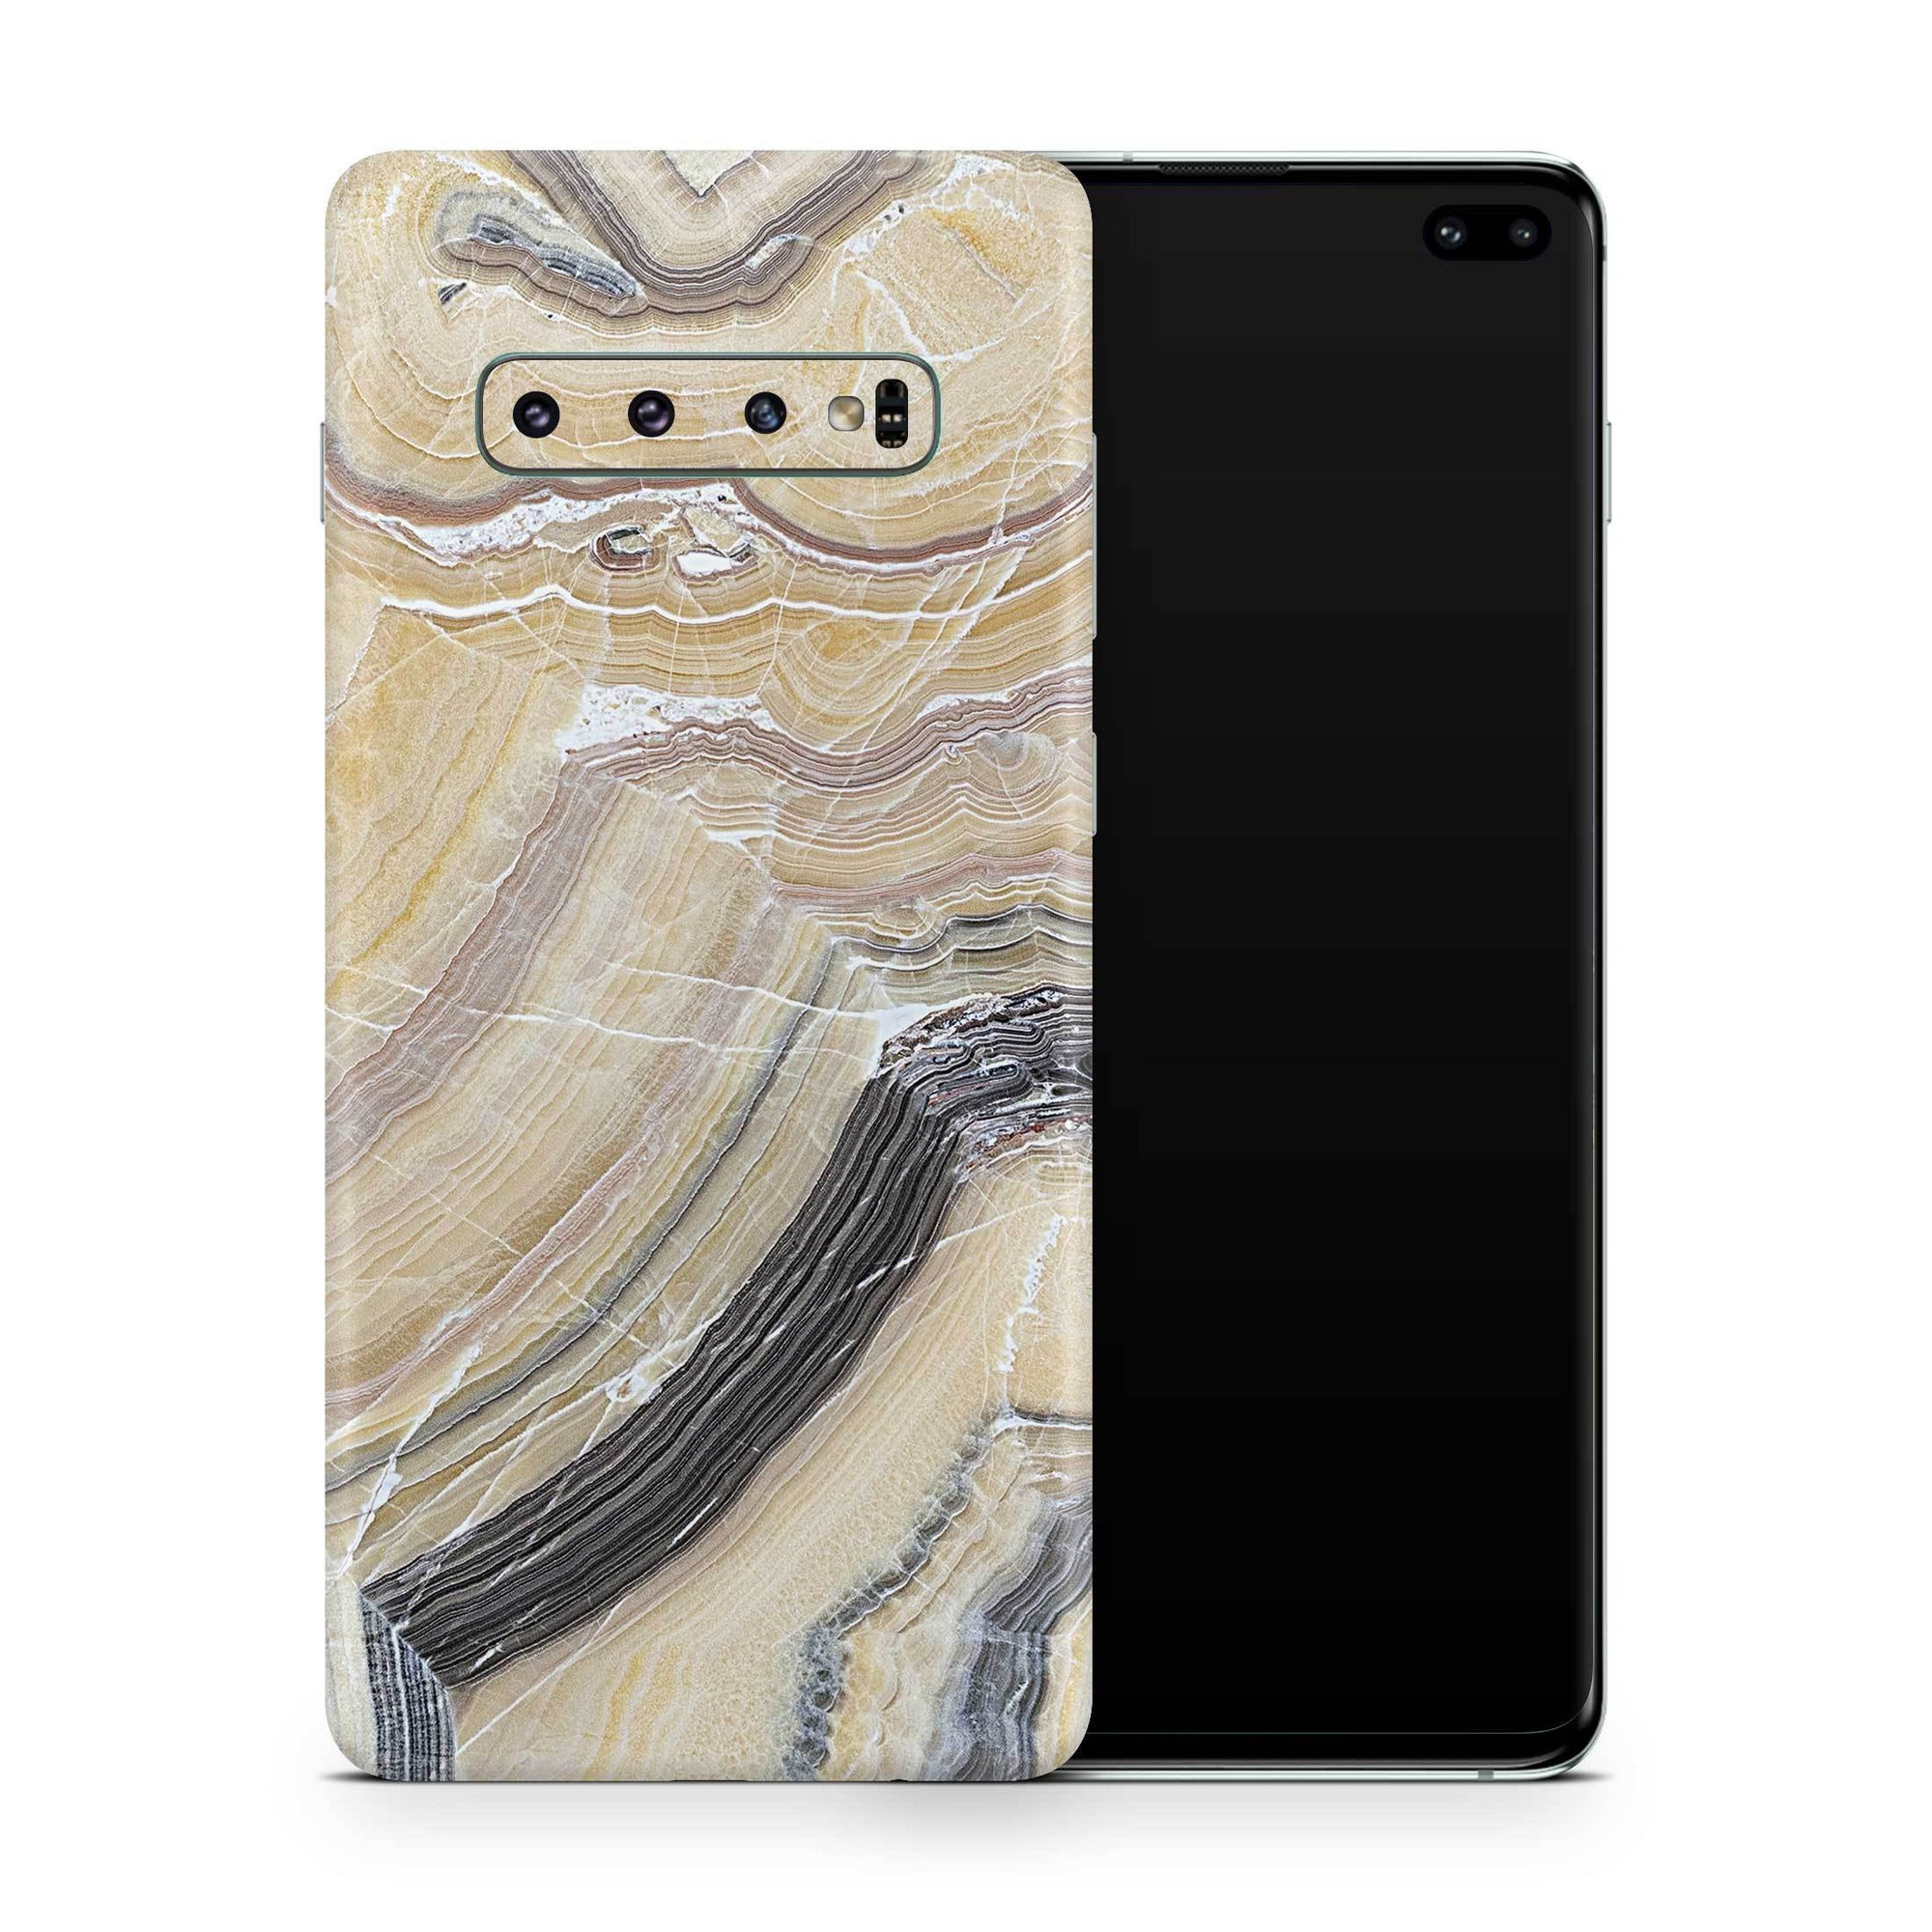 Butter Marble Galaxy S10e Skin + Case